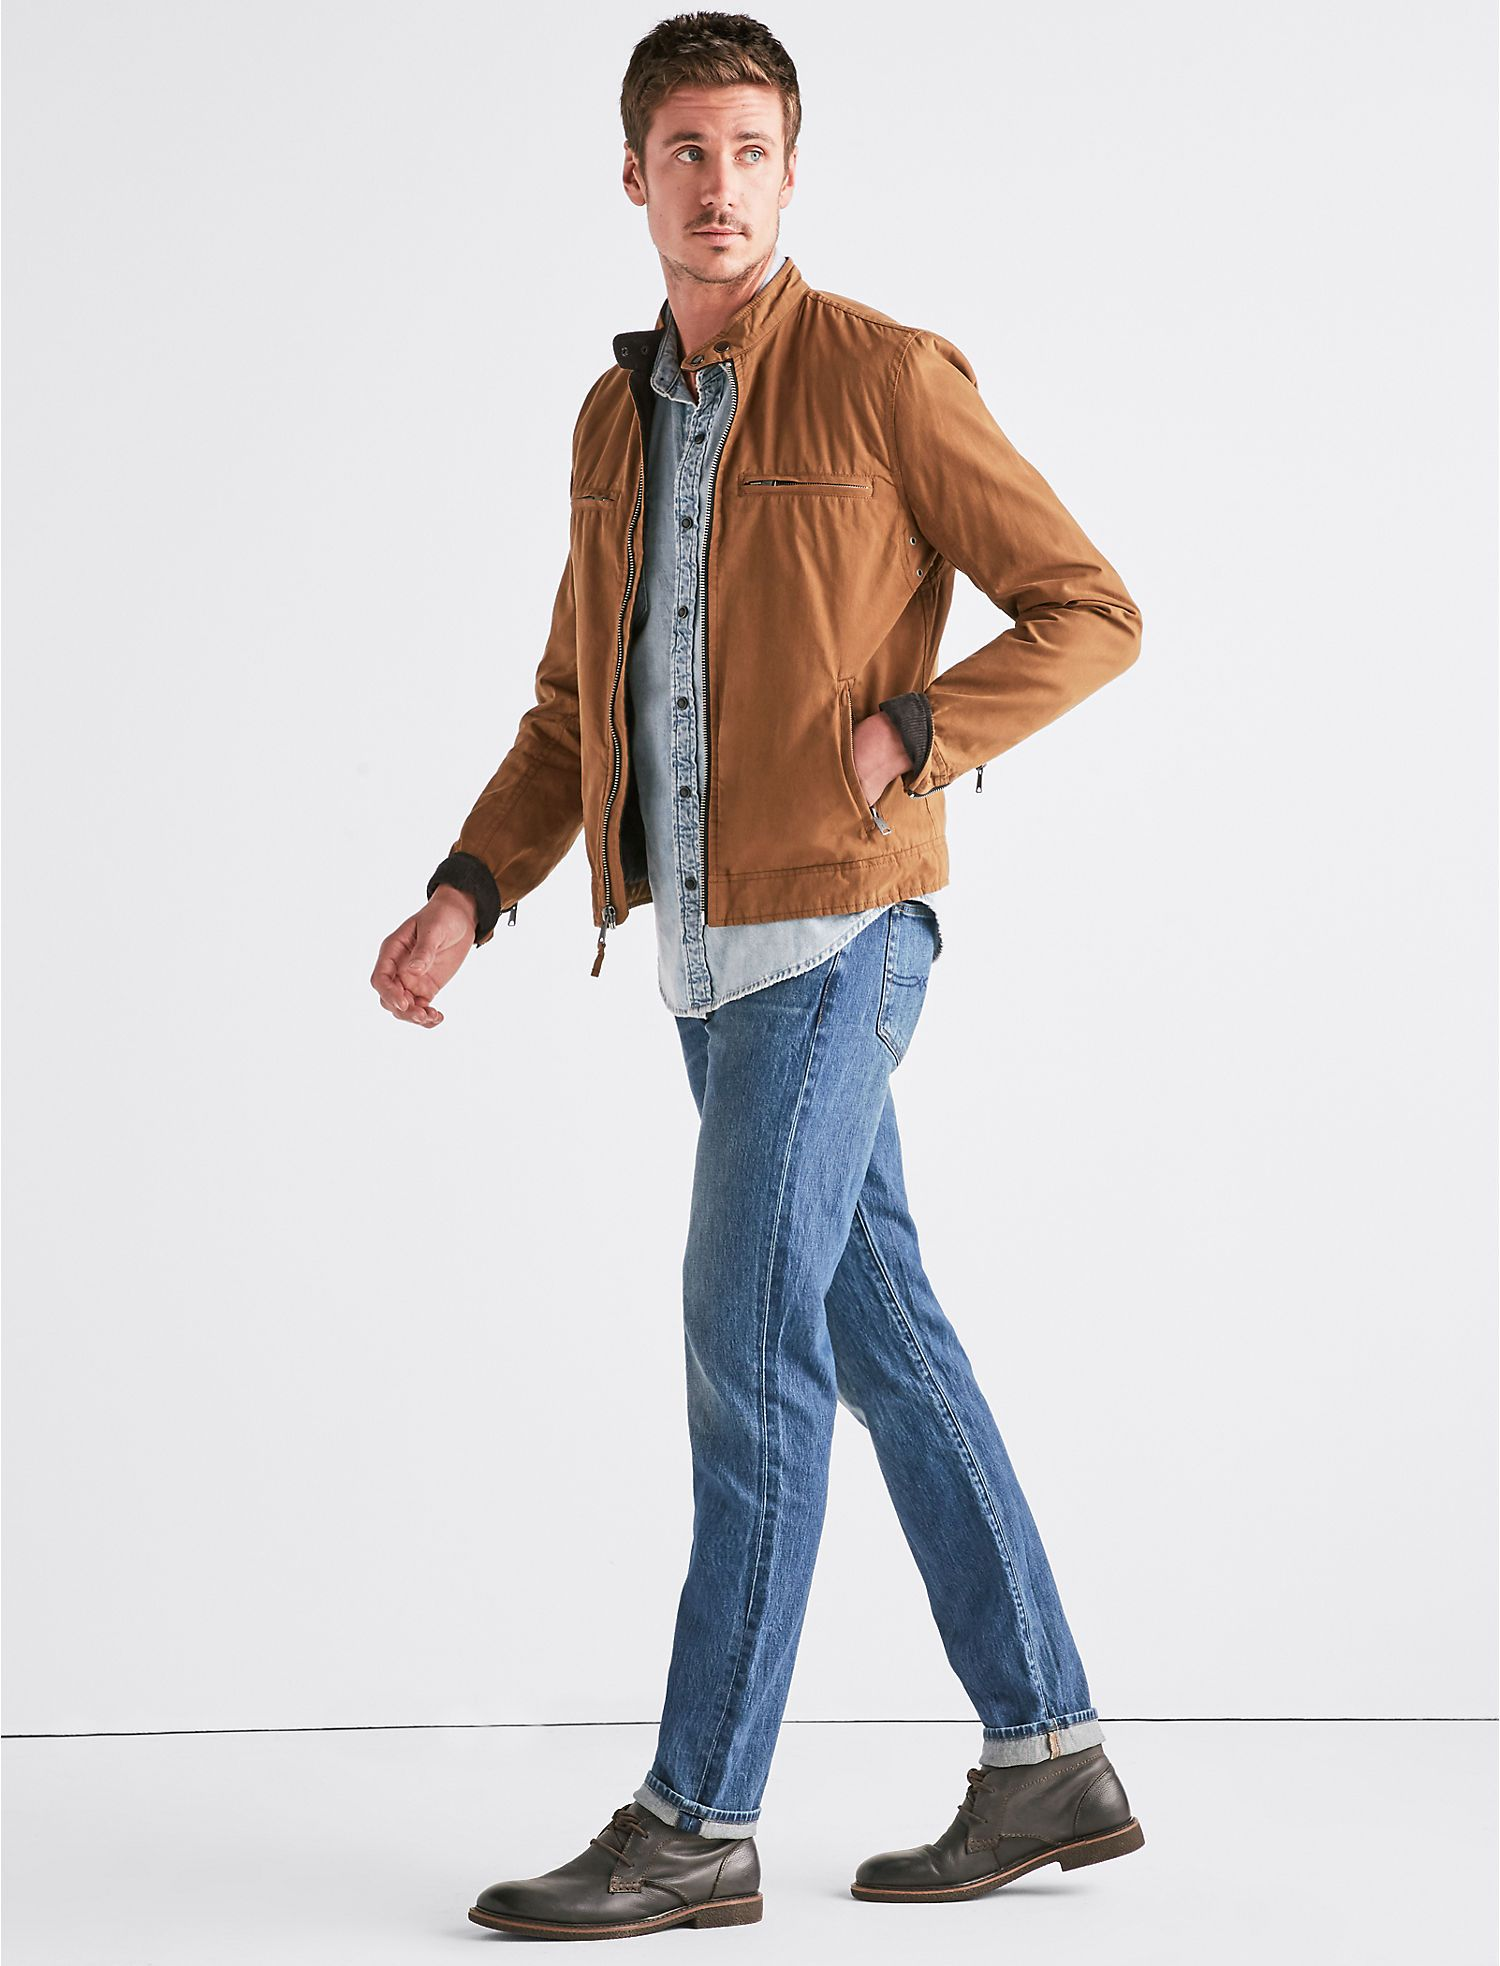 24 Best Men S Casual Outfits Vintagetopia: Waxed Bonneville Jacket